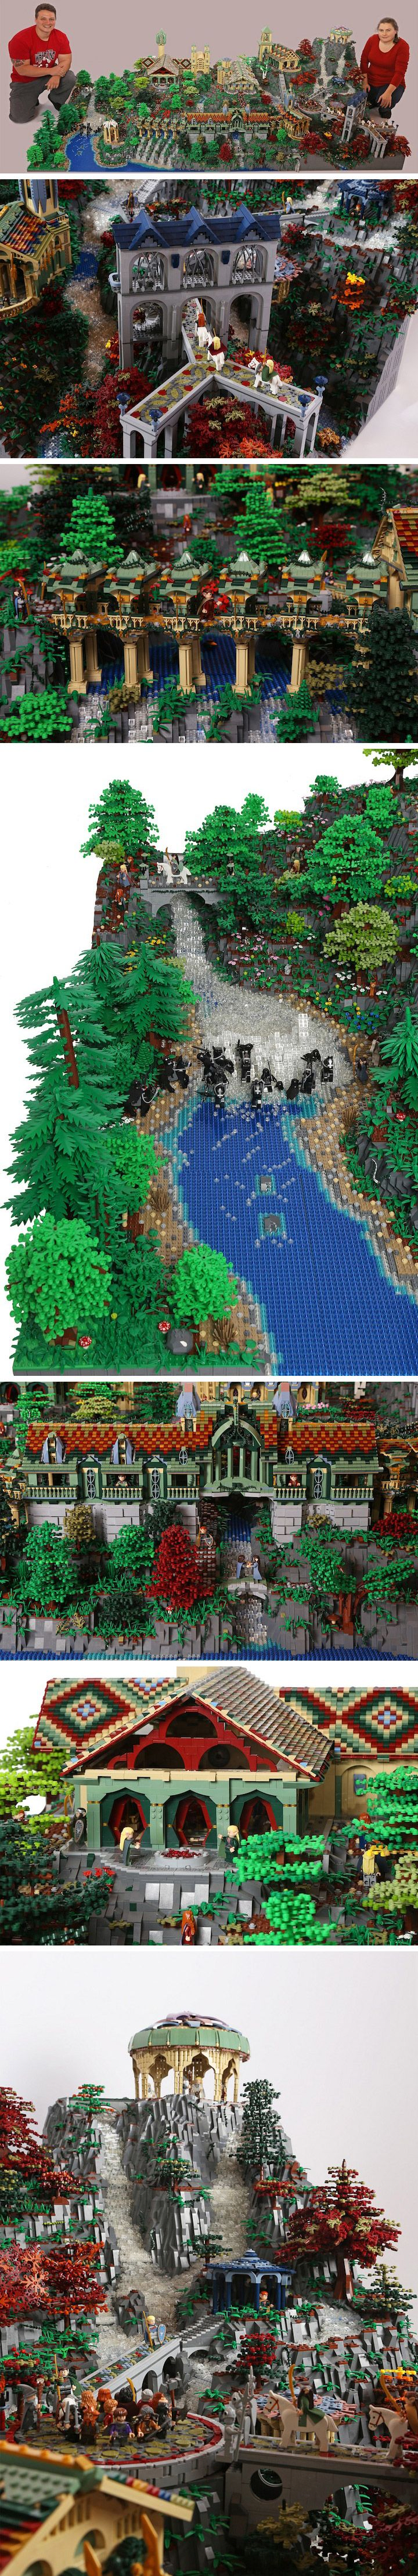 Lego Rivendell. (Lord of the Rings)